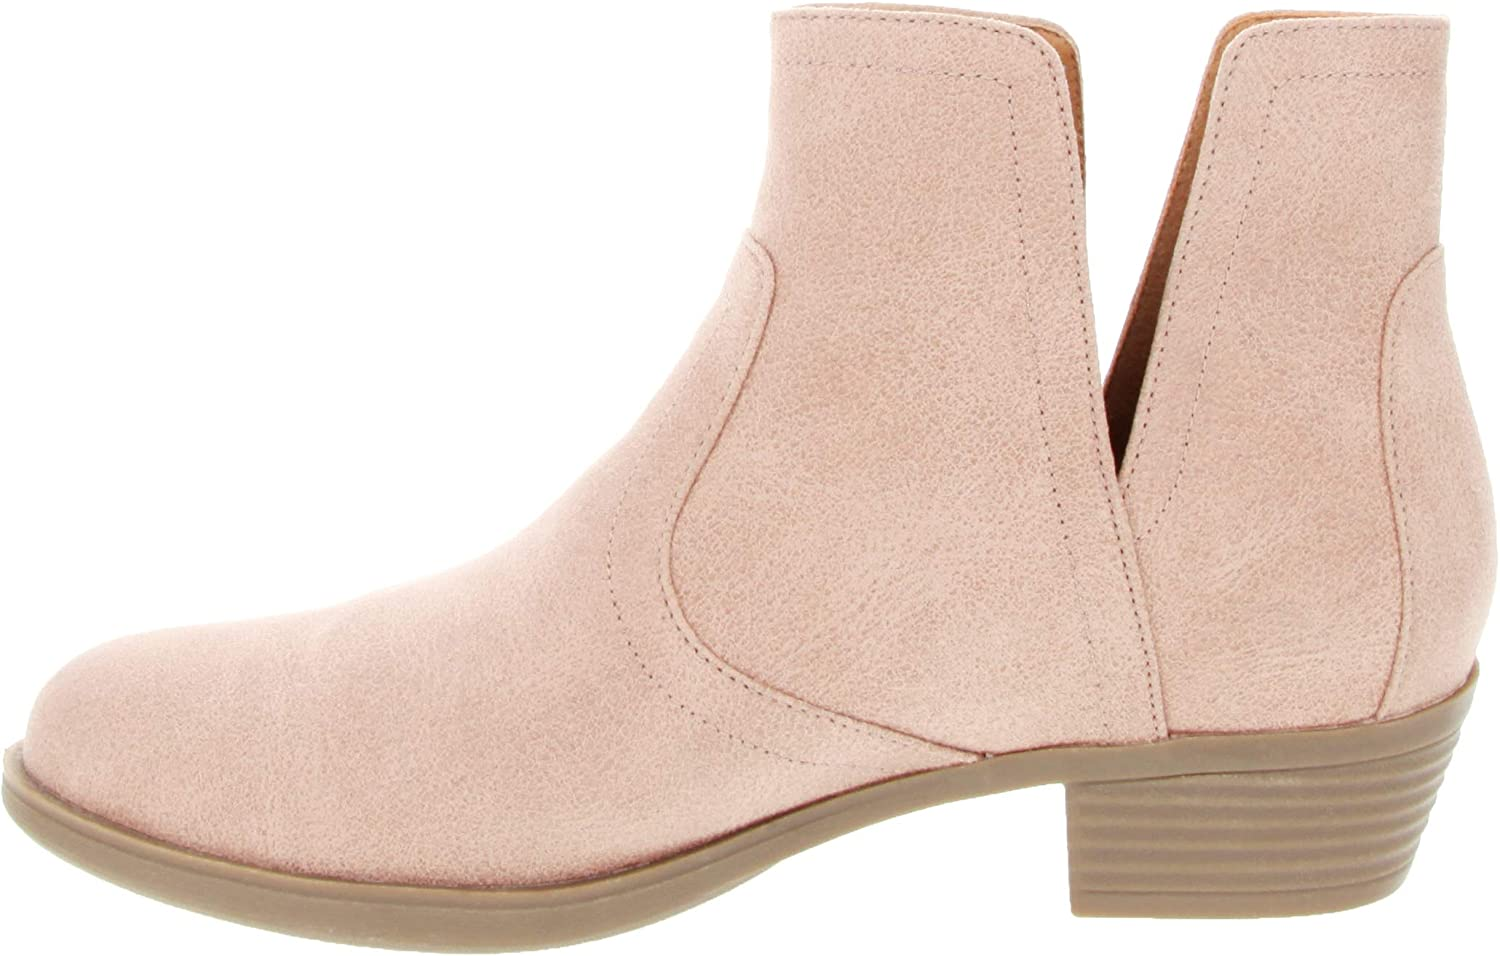 Sugar Booties for Women Treat Womens Ankle Boot